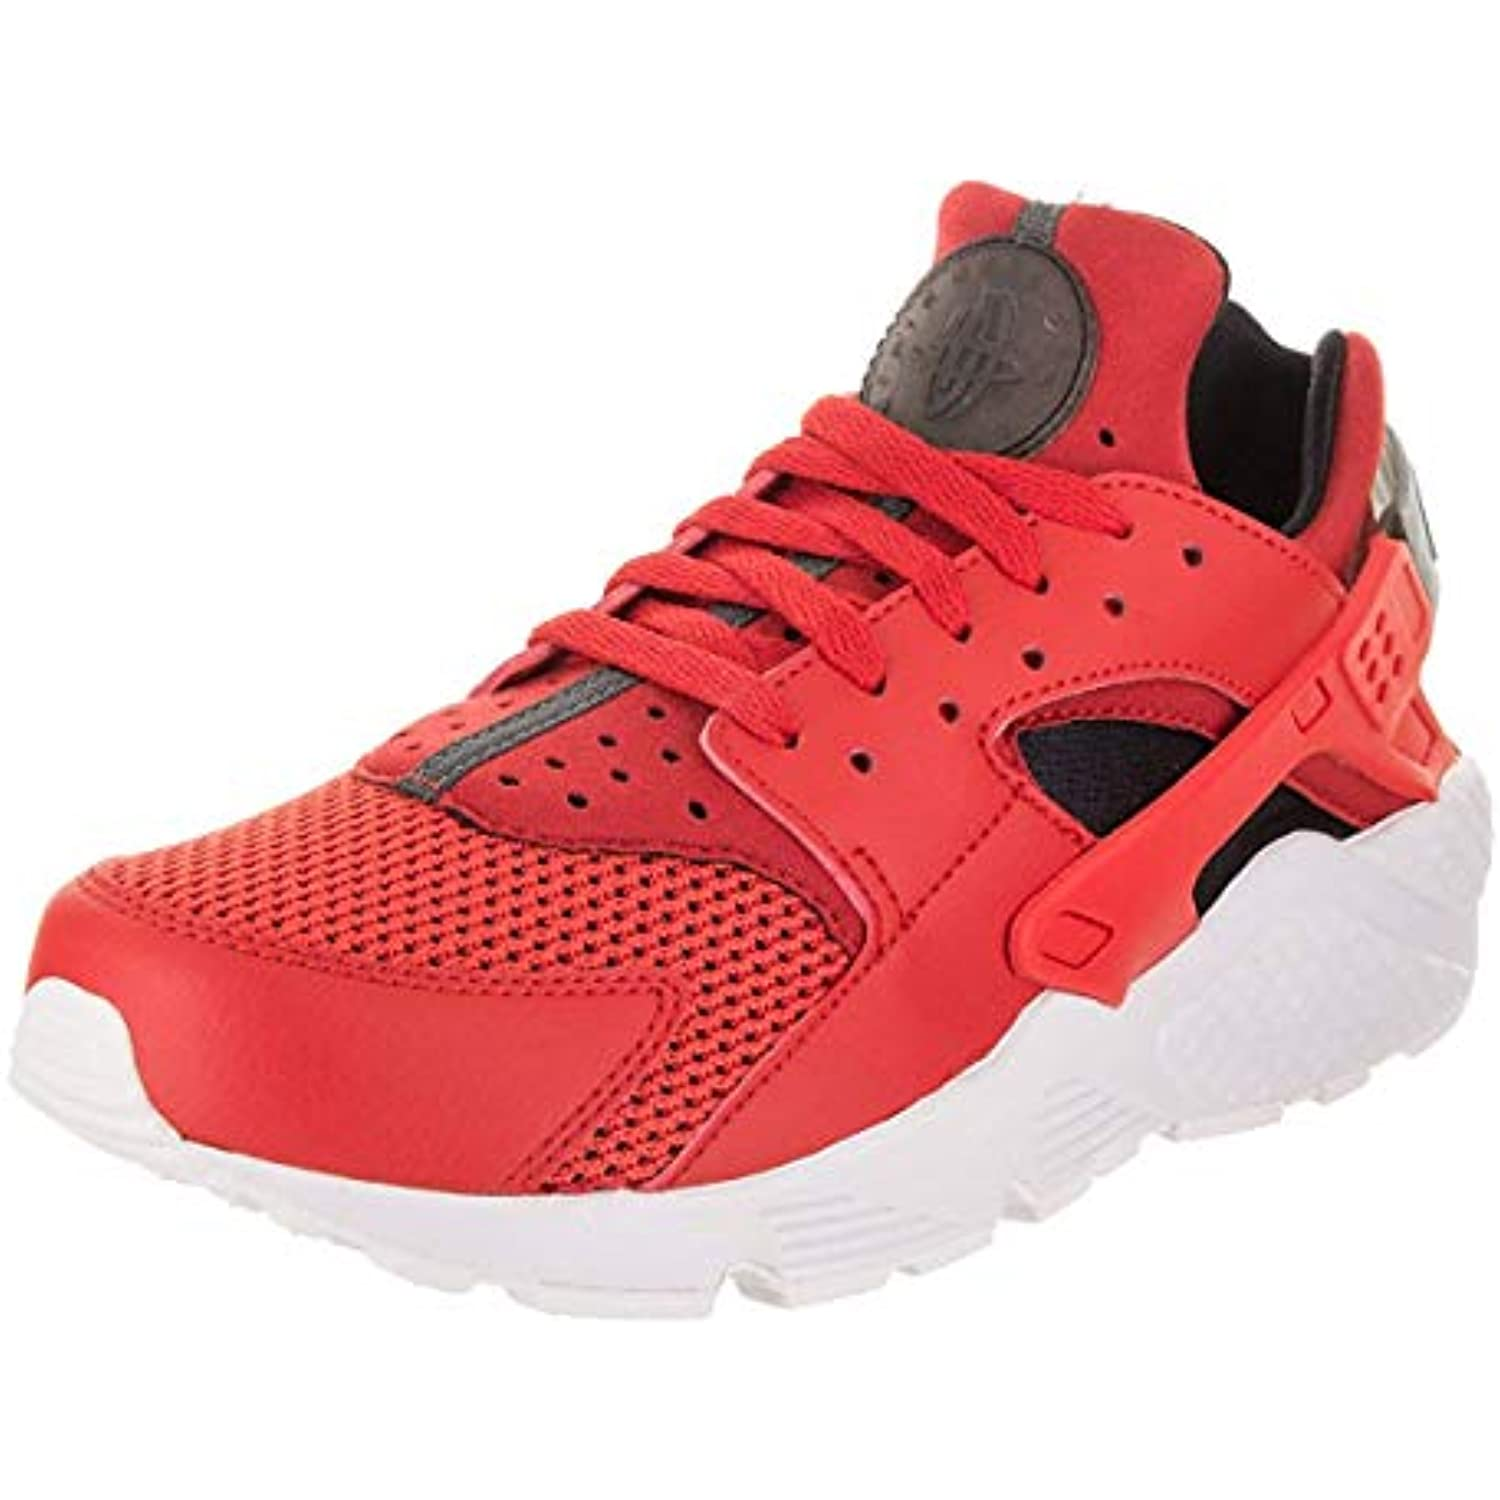 Nike Homme Air - Huarache Leather Textile Formateurs - B07CZRL823 - Air 15a4dc